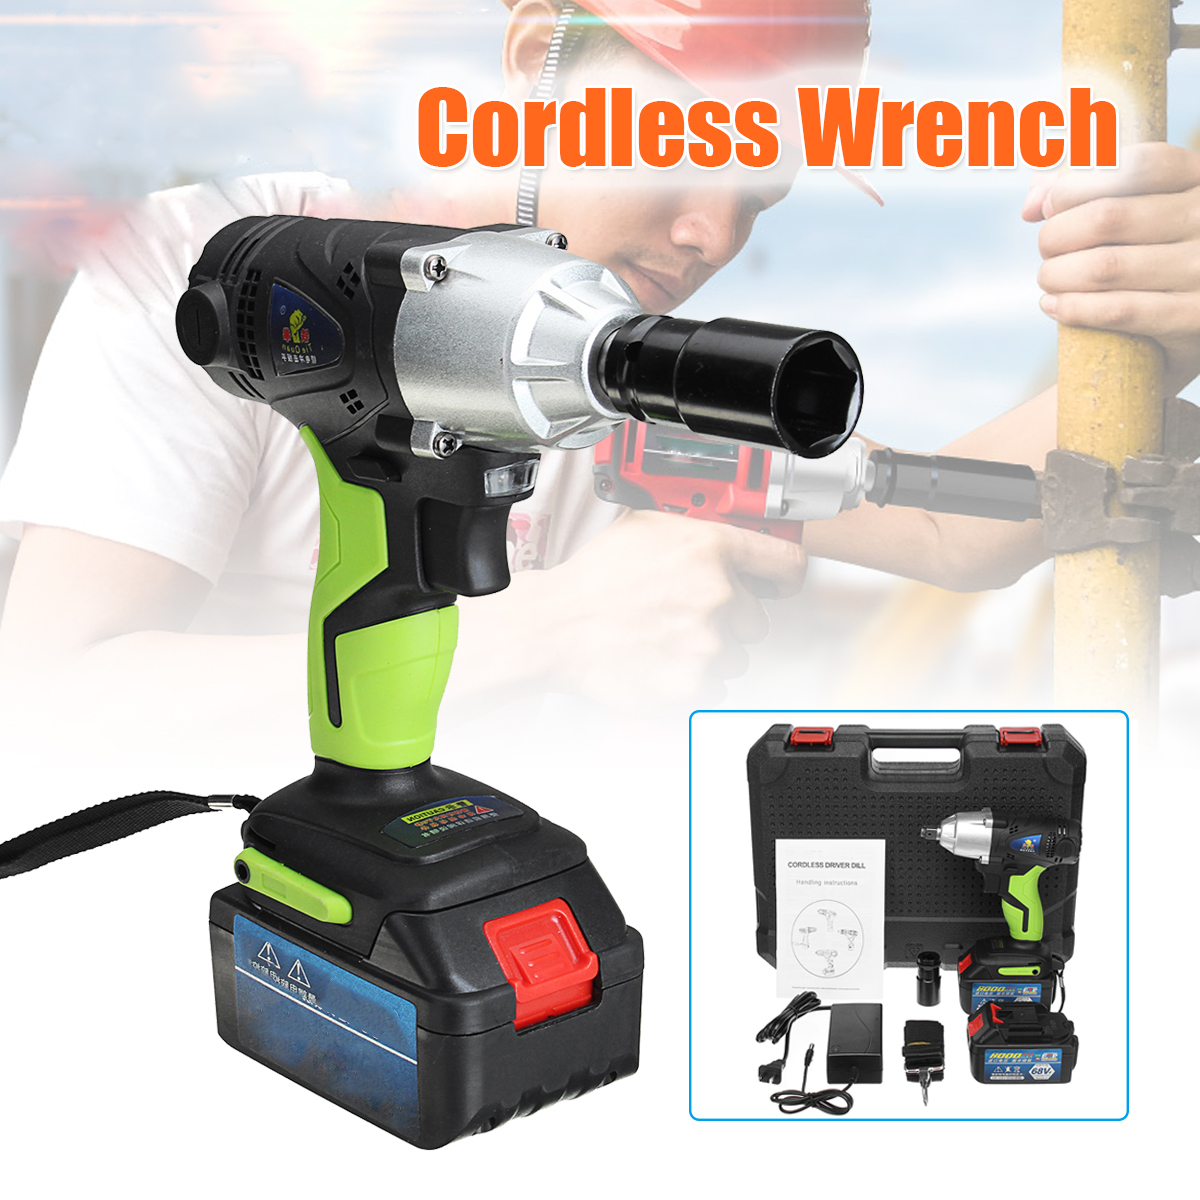 8.0Ah 68V Cordless Electric Wrench Rechargeable Li Battery Hand Drill Driver Drill Power Wrench Tools 1 Charger with 2 Batteries8.0Ah 68V Cordless Electric Wrench Rechargeable Li Battery Hand Drill Driver Drill Power Wrench Tools 1 Charger with 2 Batteries